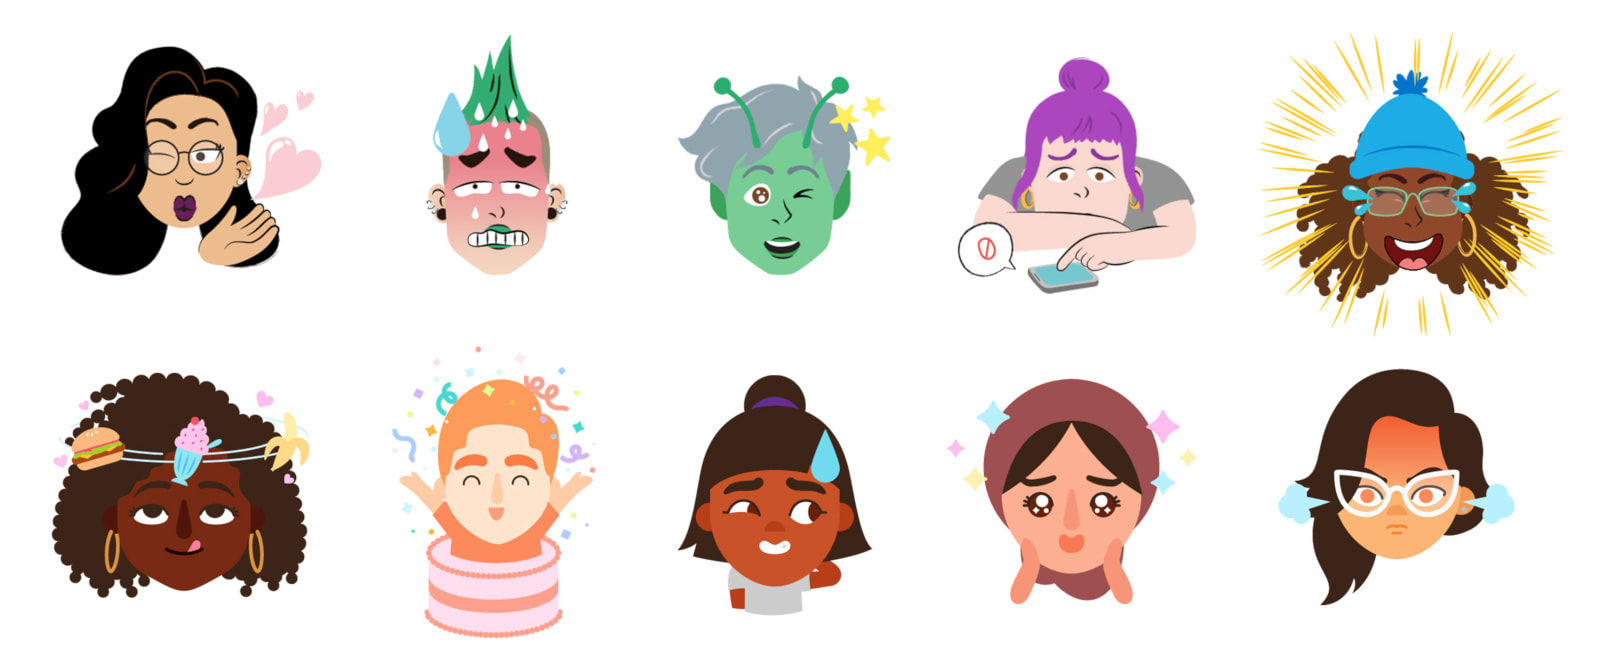 Google Gboard can use selfies to create a 'Mini' version of you